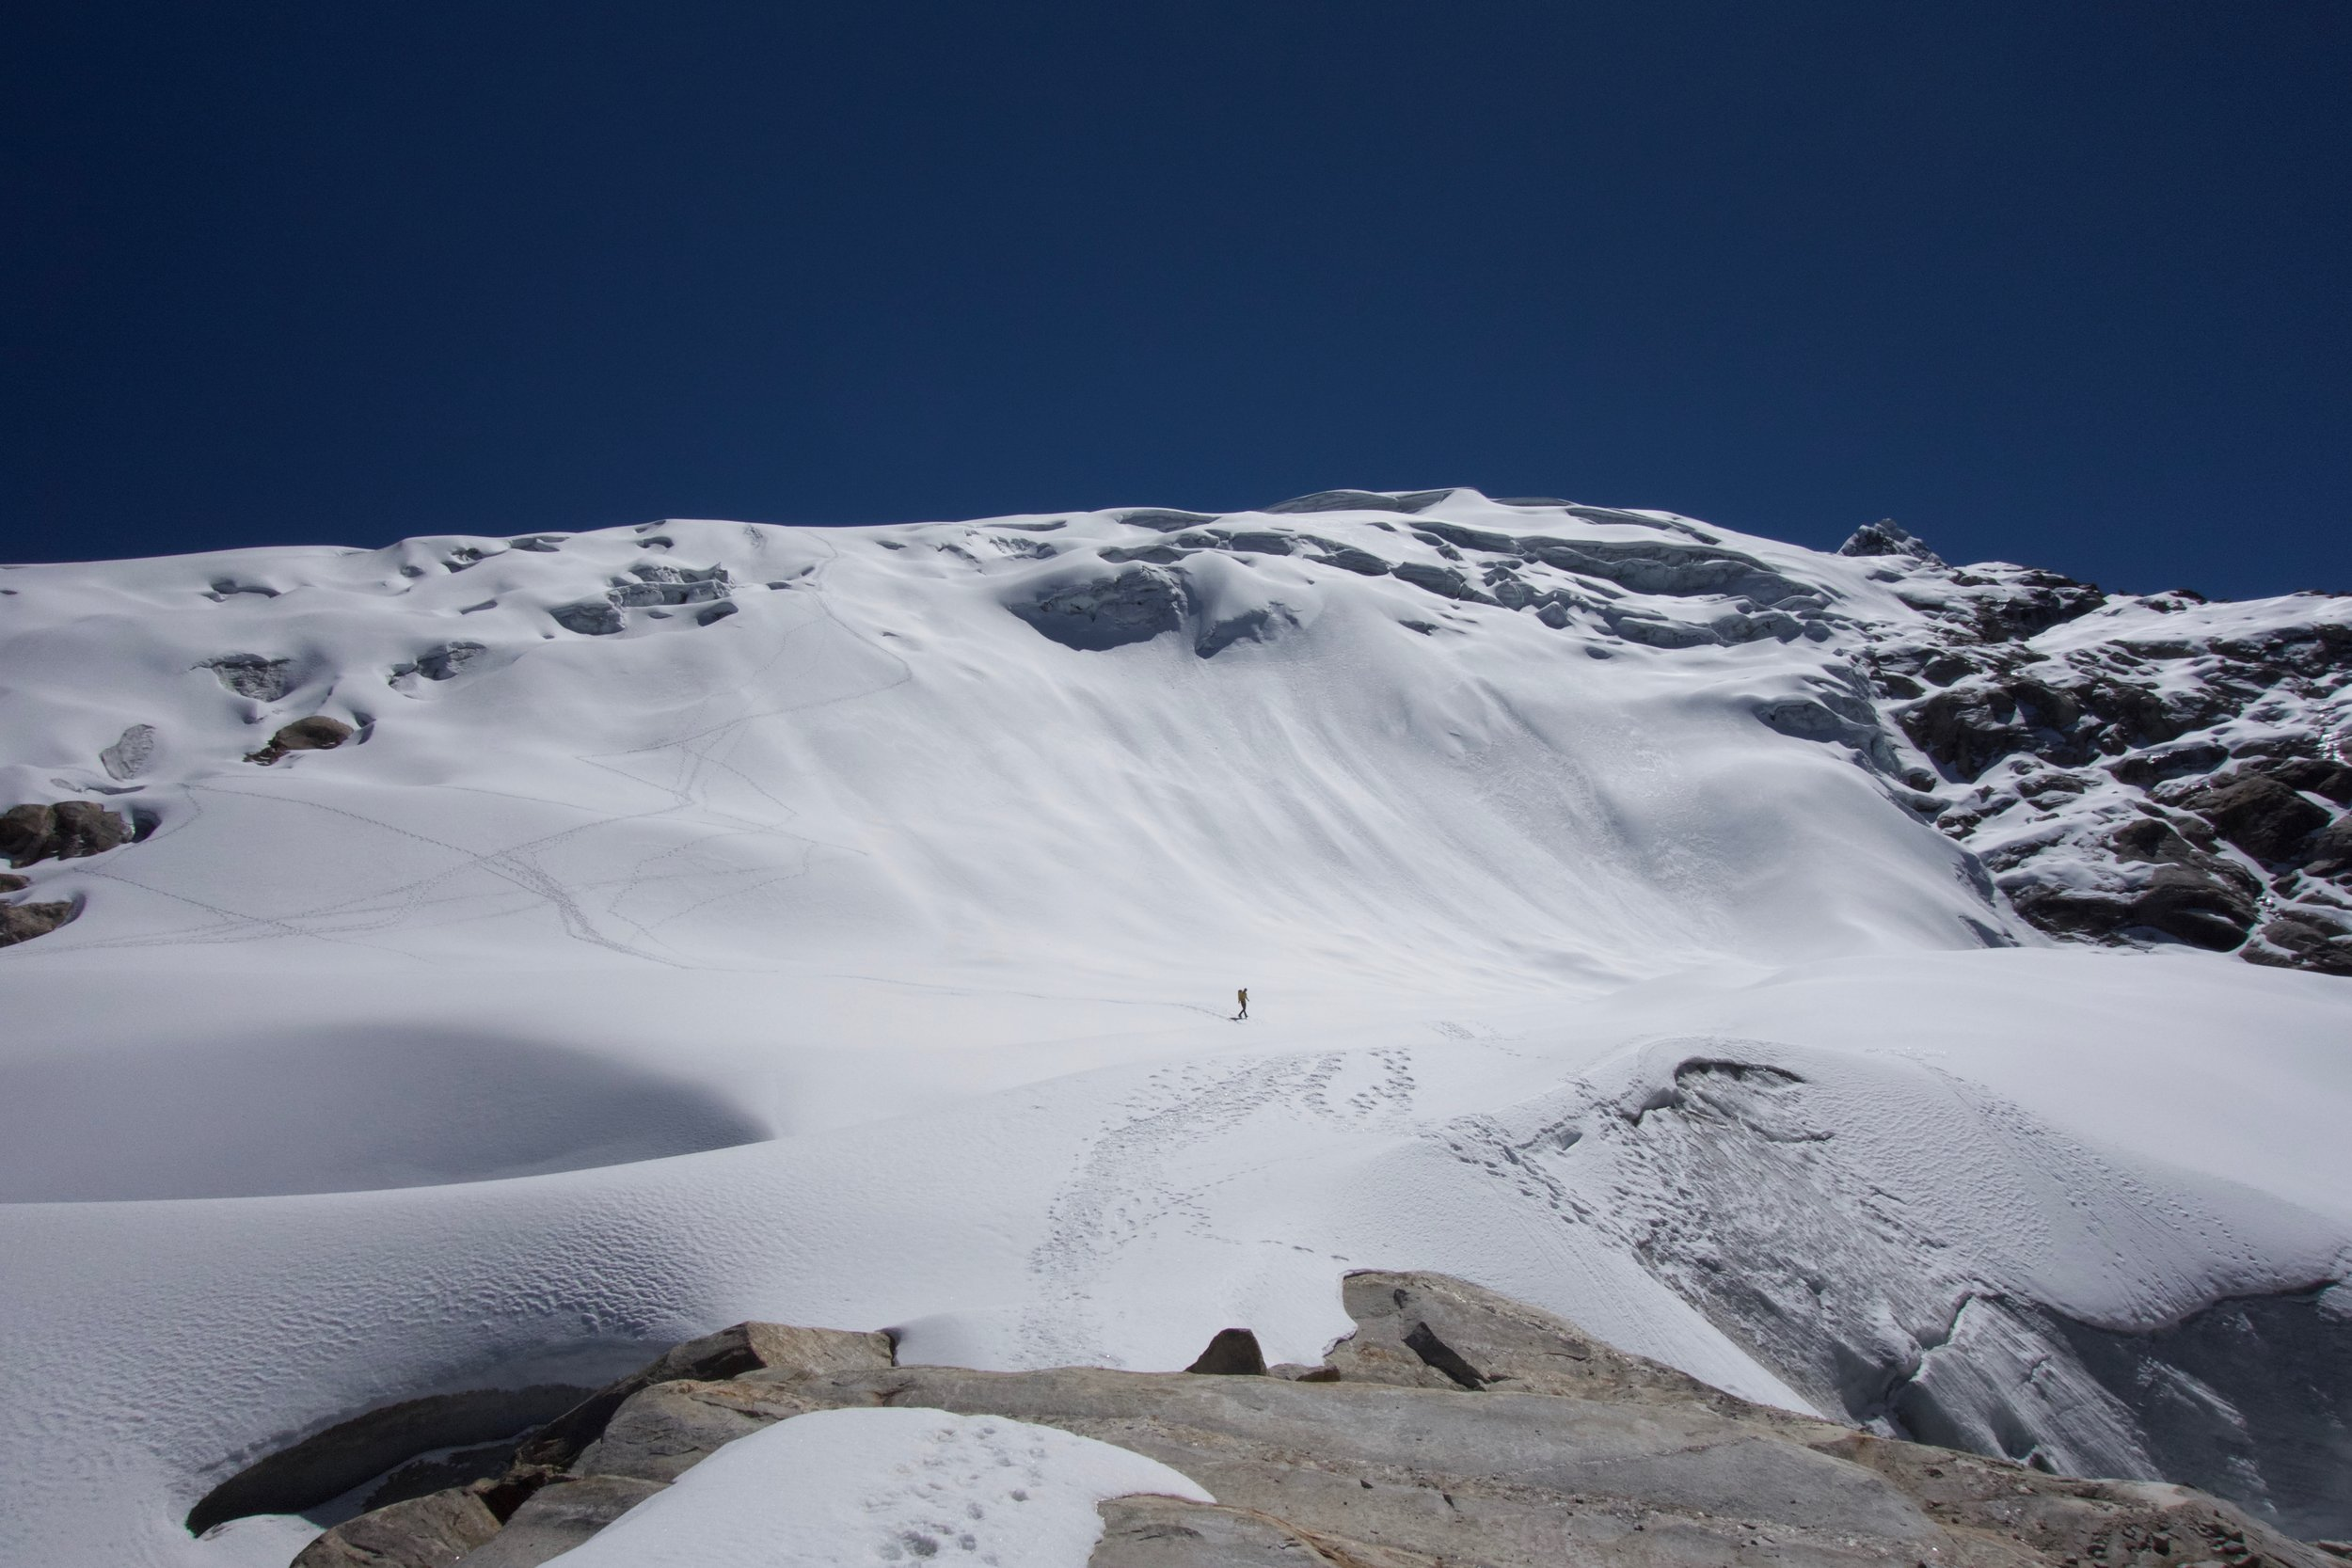 Coming back down the glacier to the moraine